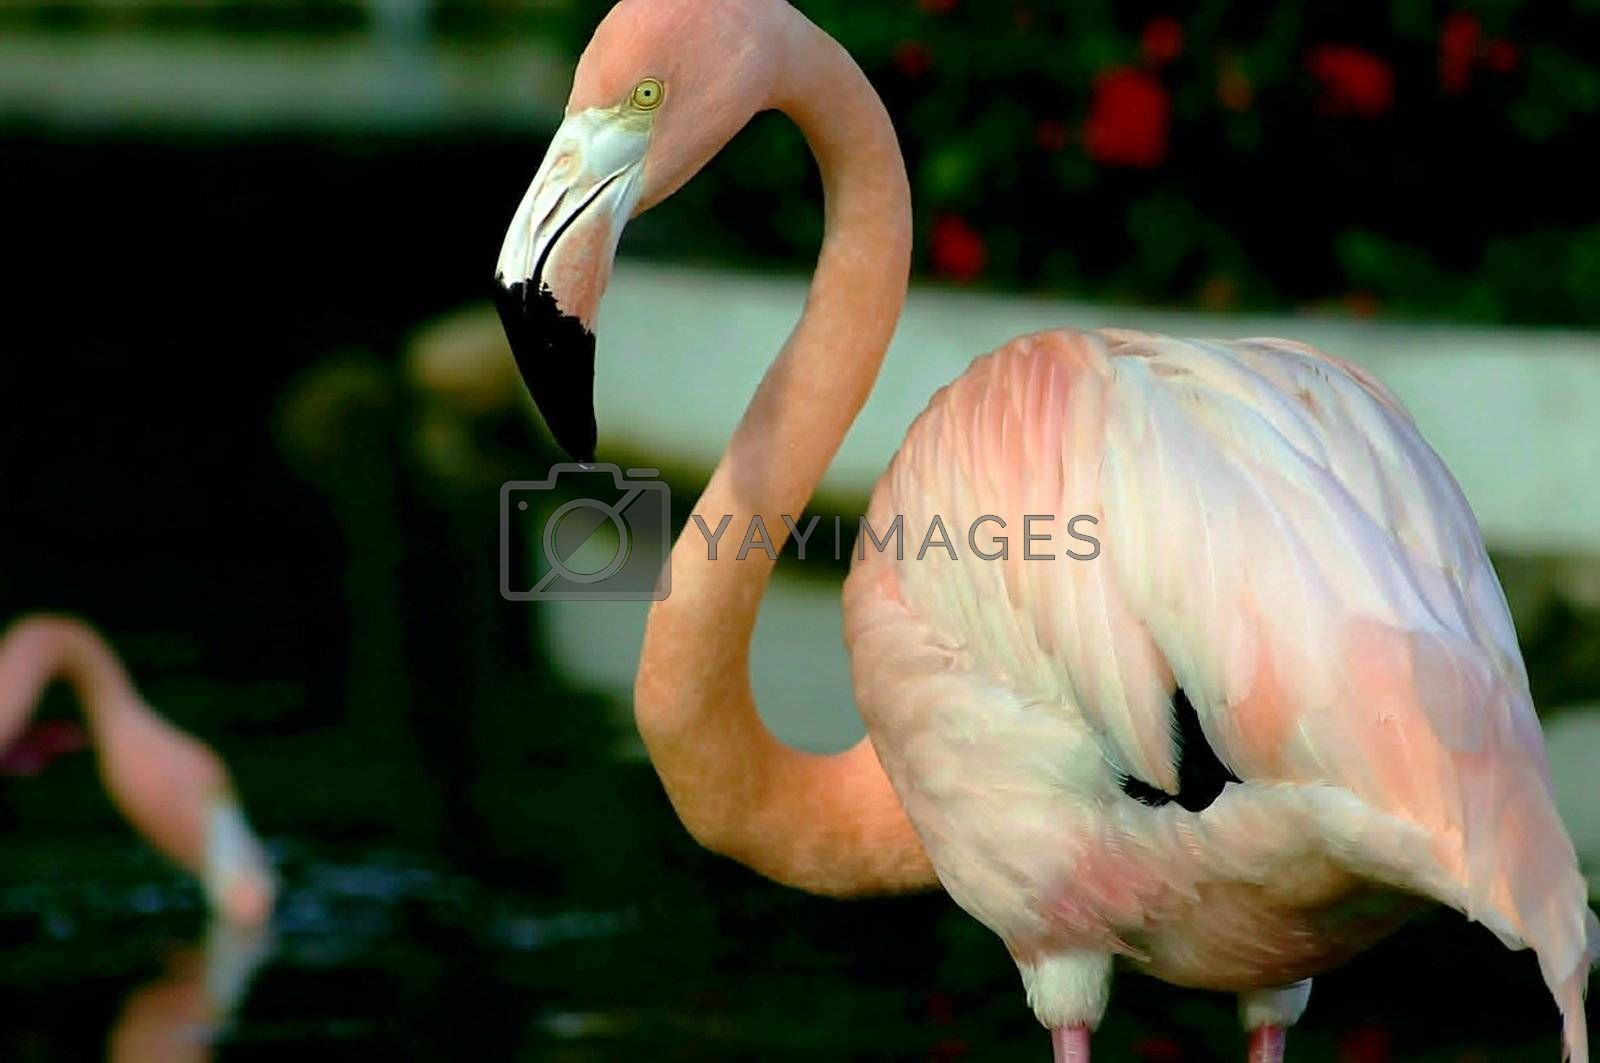 Majestic pink flamenco staring and being cautious